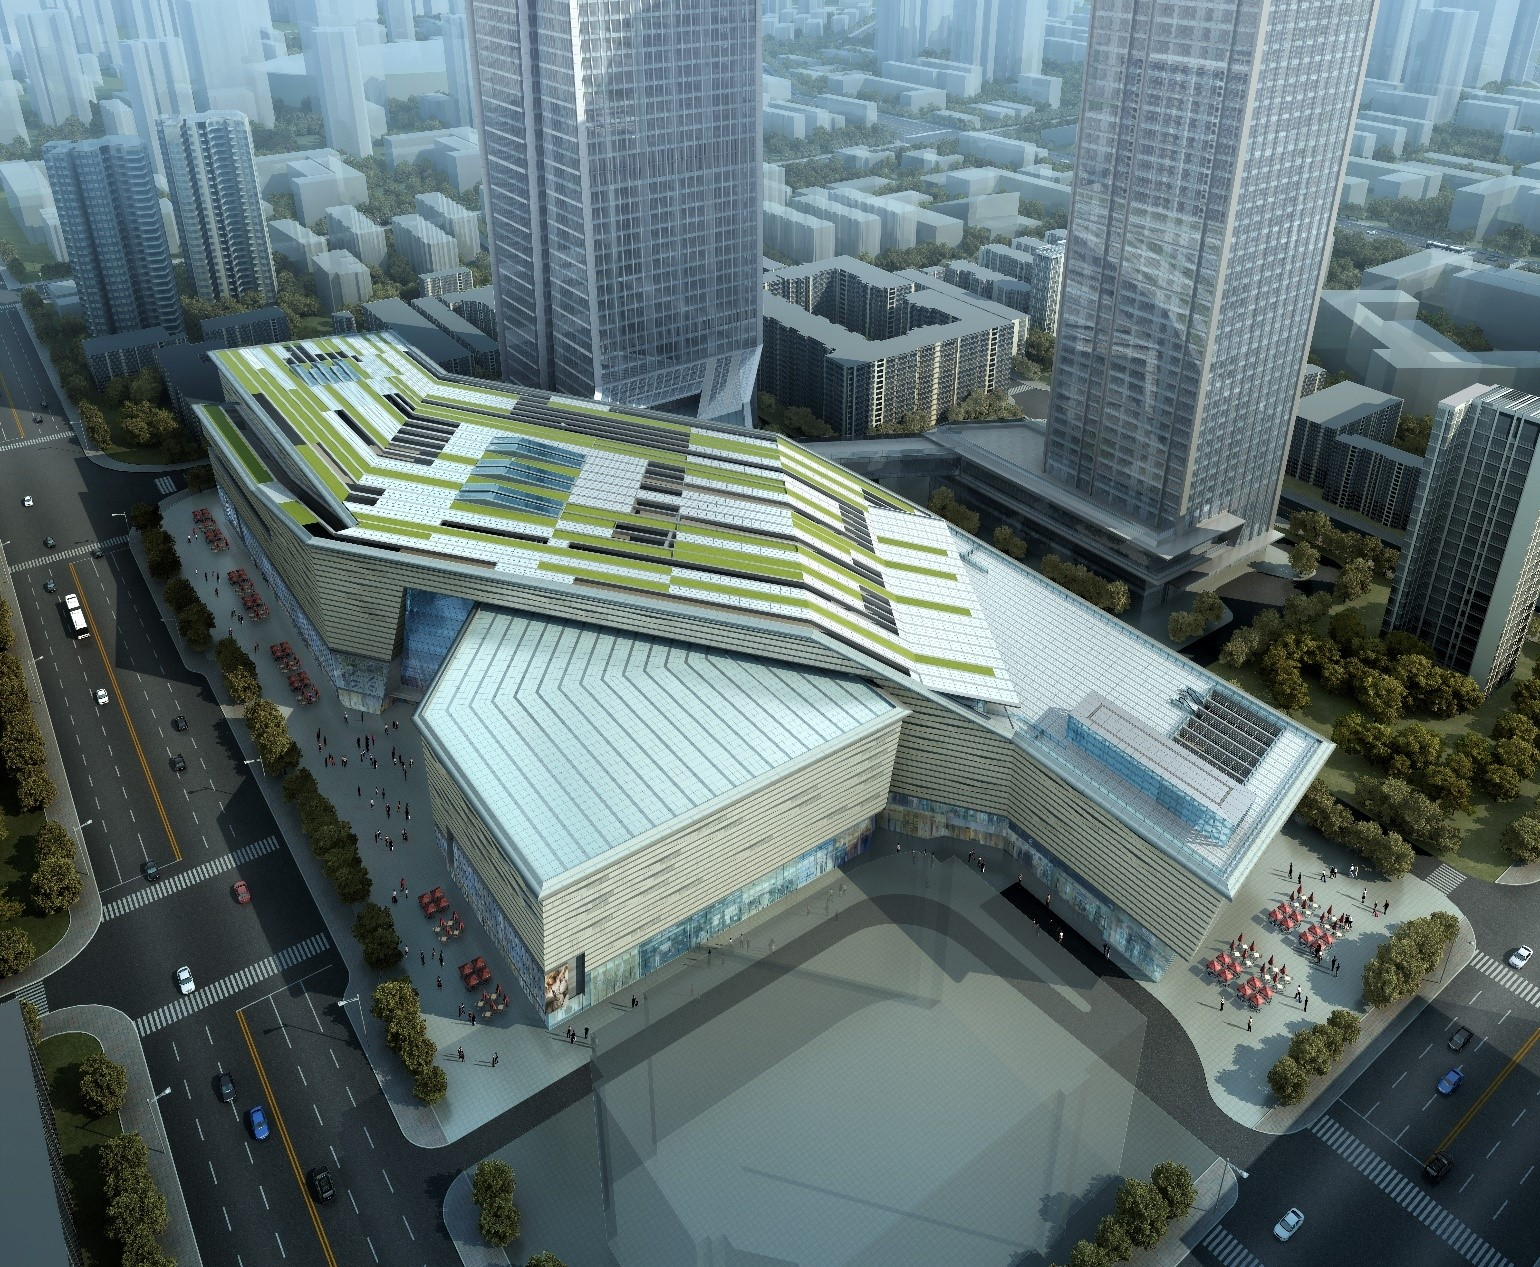 Performance Mockup Unit (PMU) of Kunming Hang Lung Plaza Project Passes the Tests by both Chinese and American Standard Methods